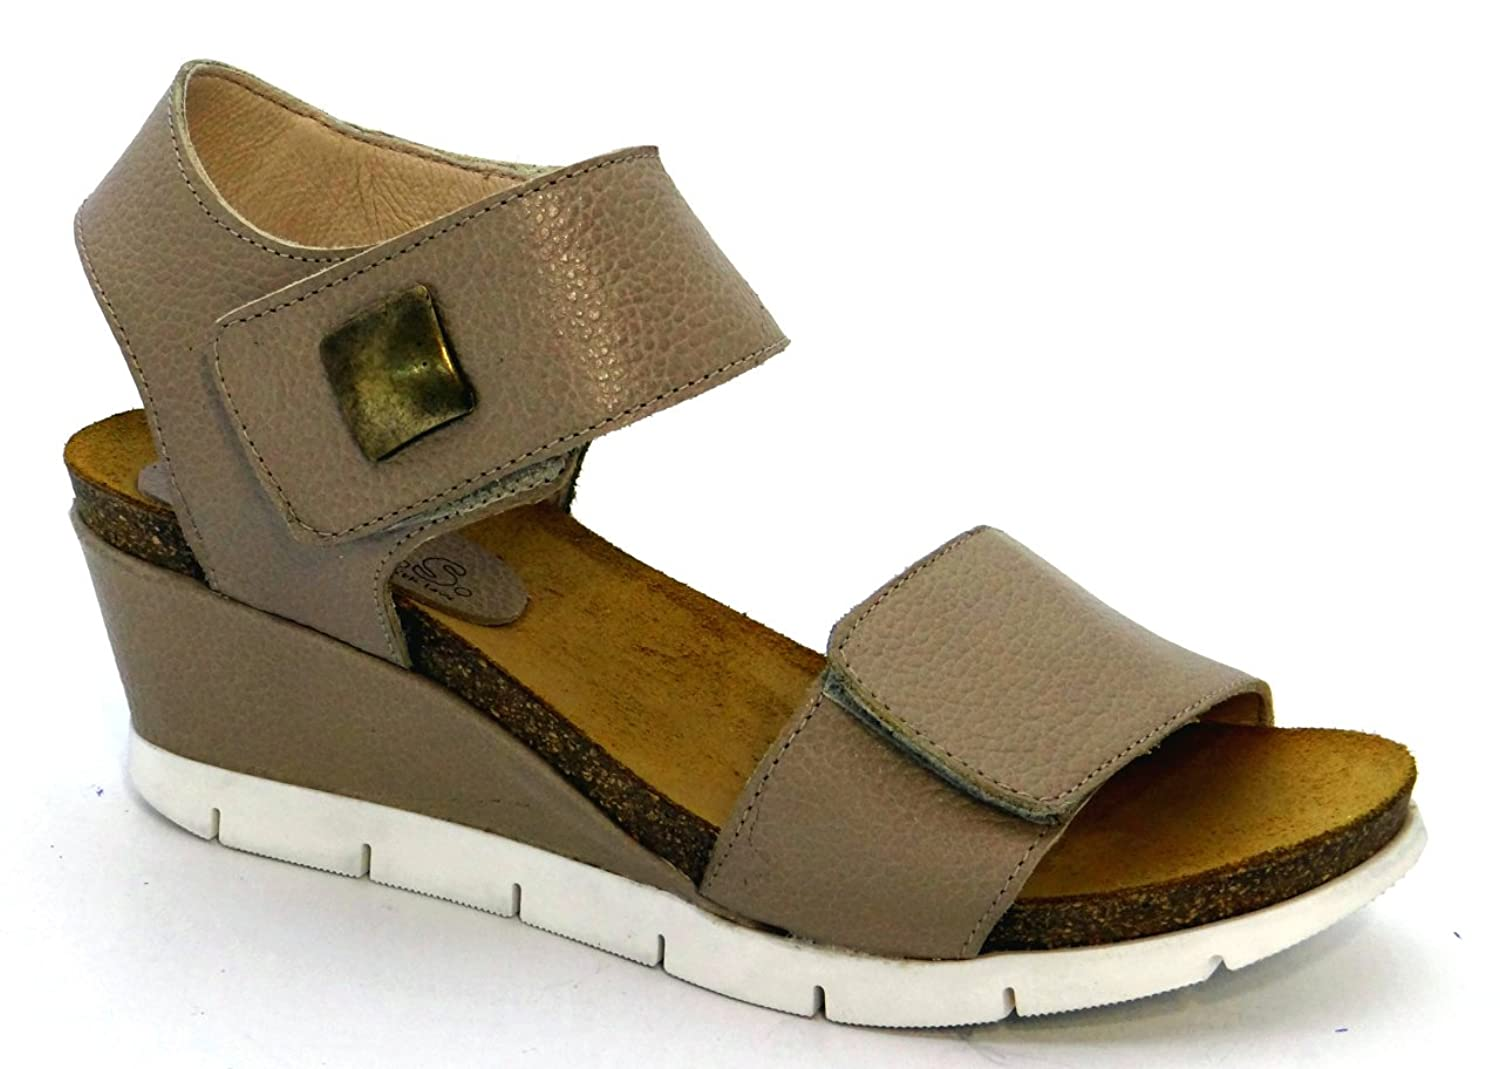 O.G.S. wide shoes OGSwideshoes Rimini Beige Extra Wide Fit Sandals 3E C D Width B07BTYDMYZ 11 3E (usD)